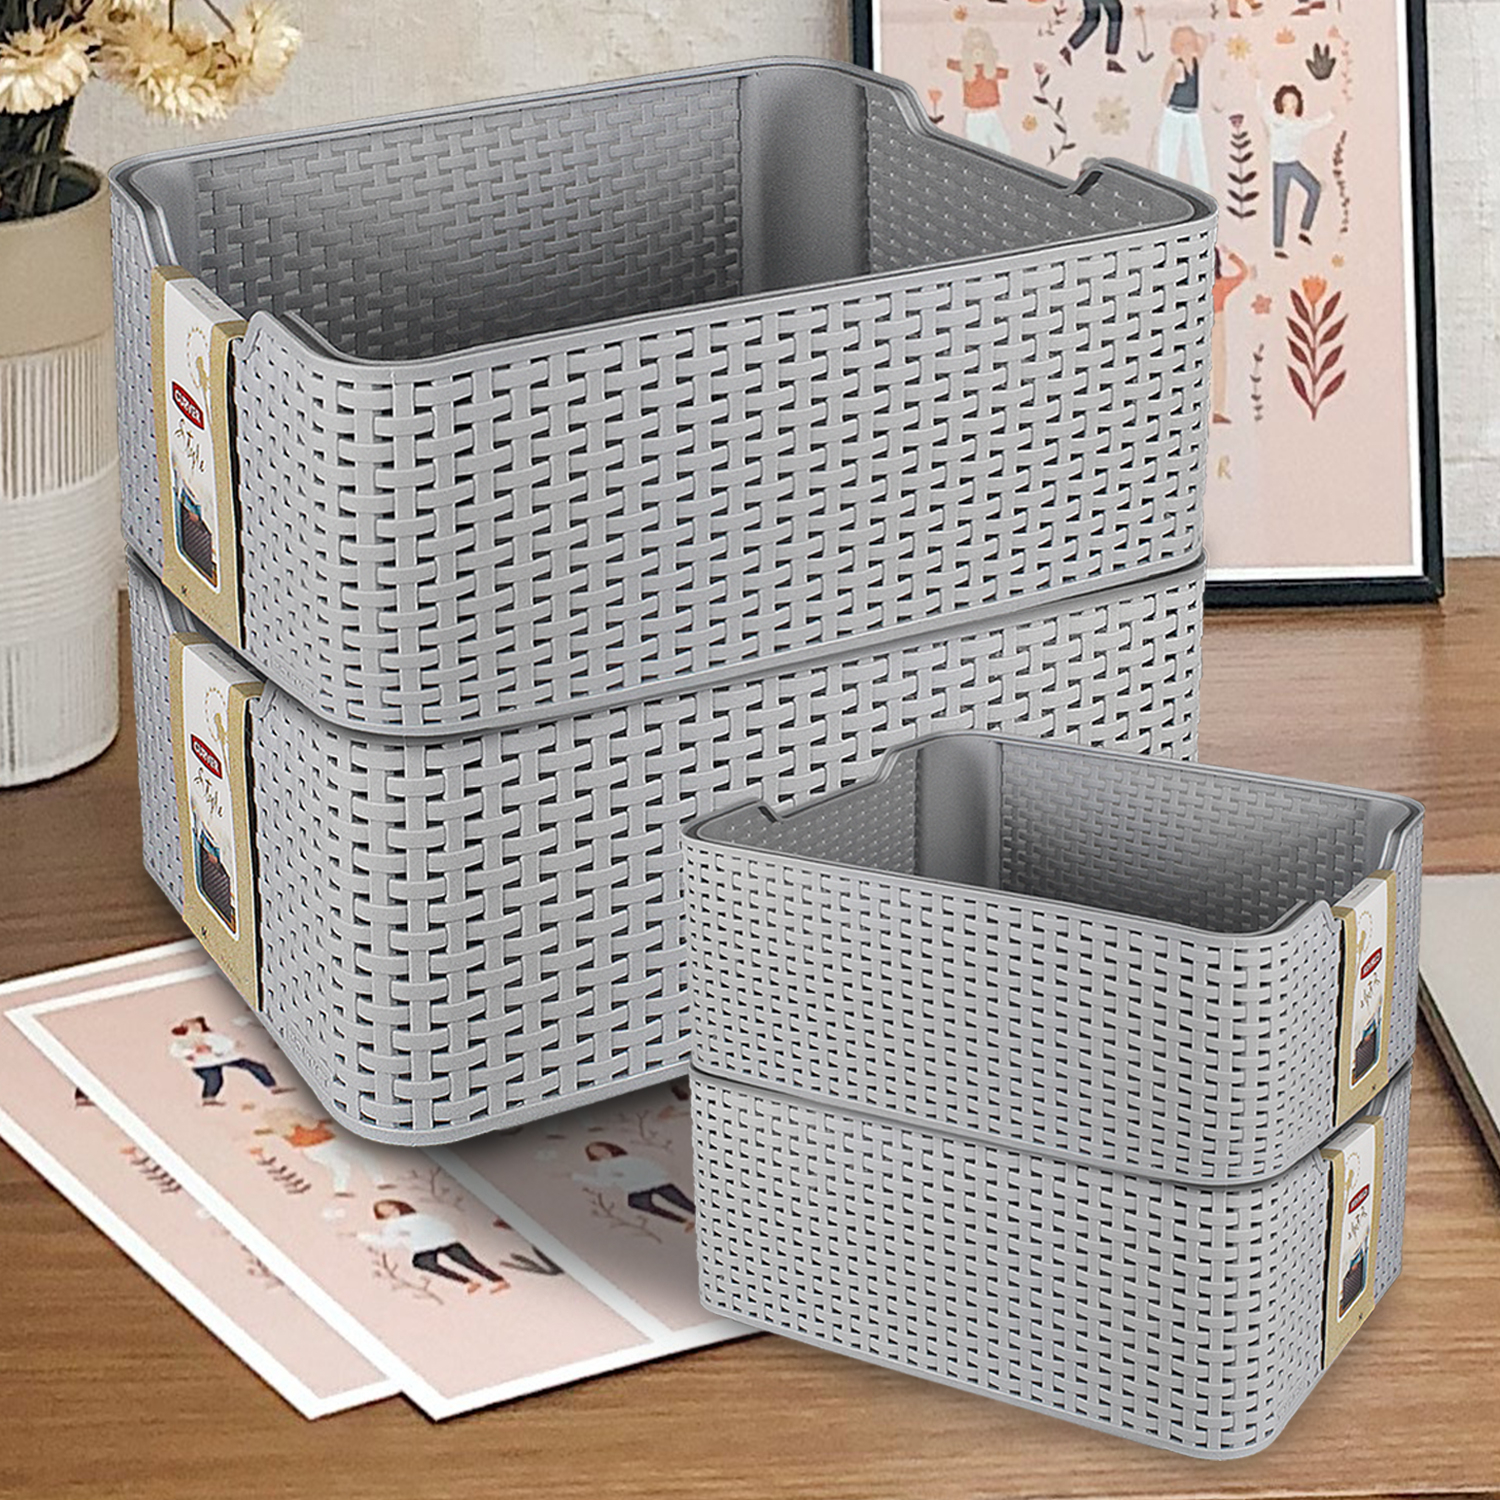 Details About Curver Plastic Rattan Basket Bathroom Stackable Storage Boxes Toiletries Makeup intended for proportions 1500 X 1500